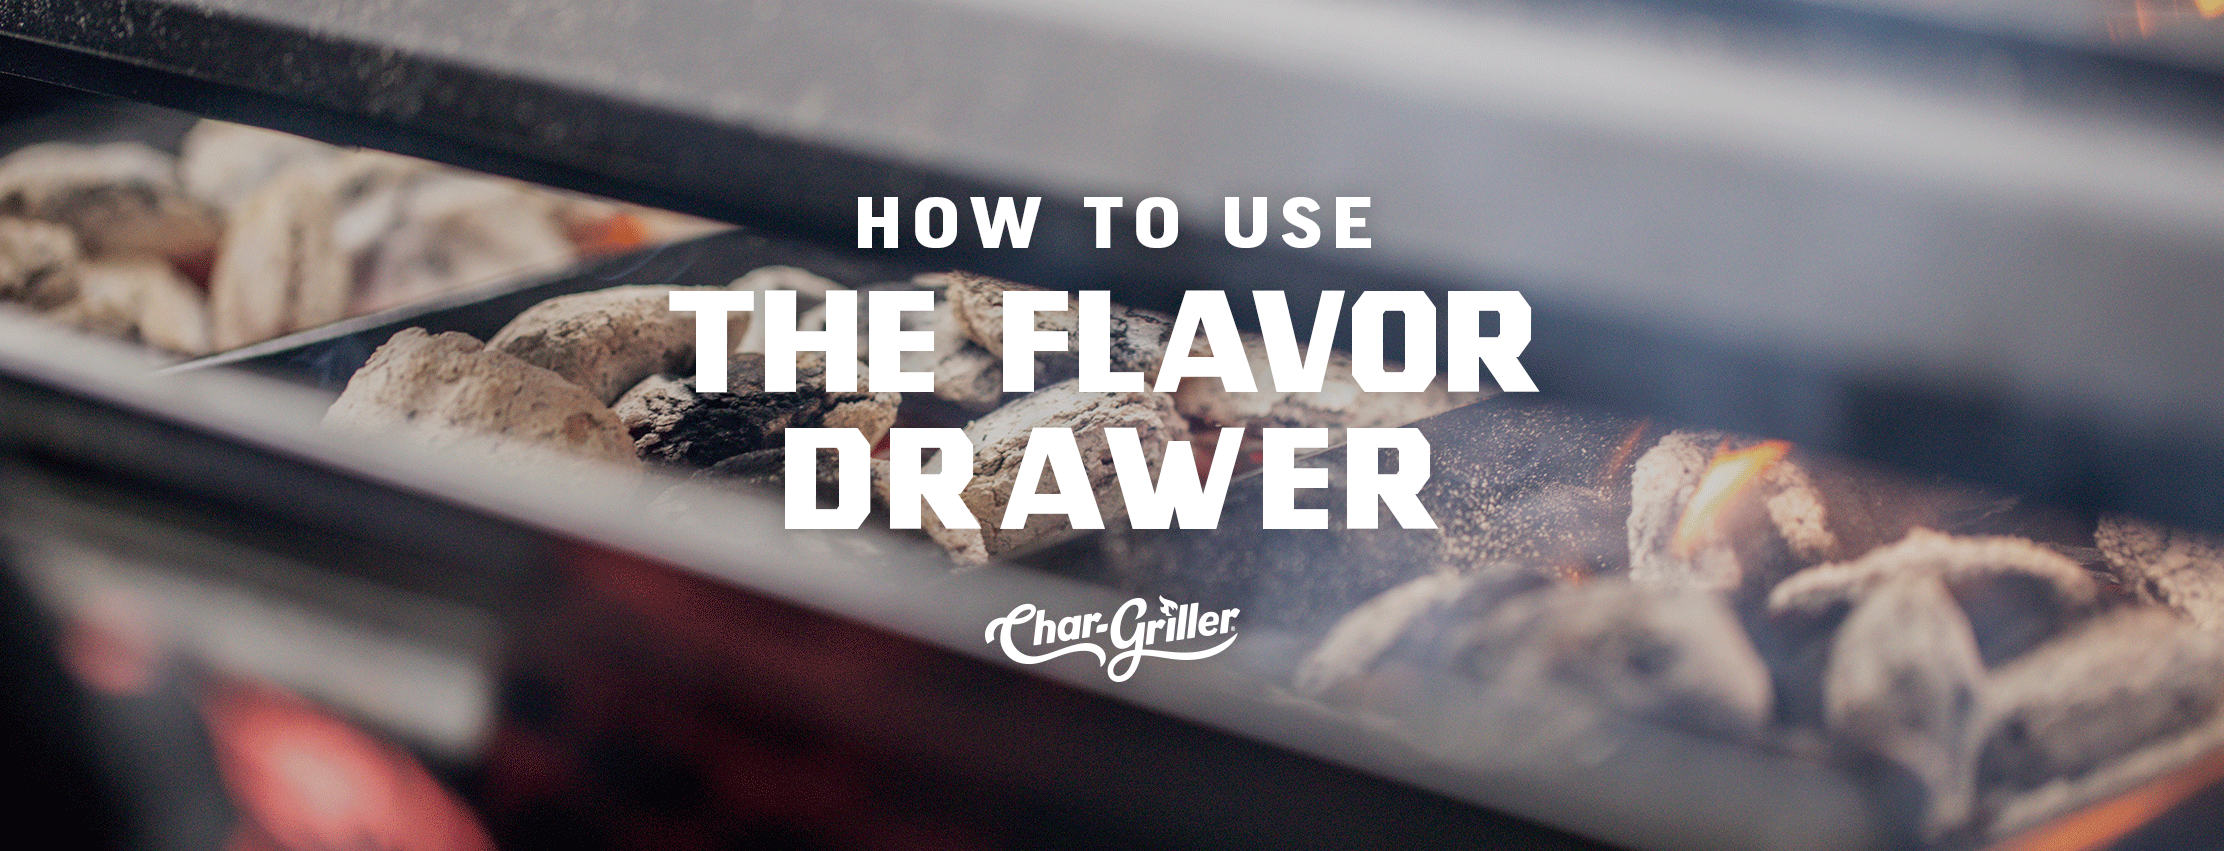 Flavor Pro: How to Use the Flavor Drawer